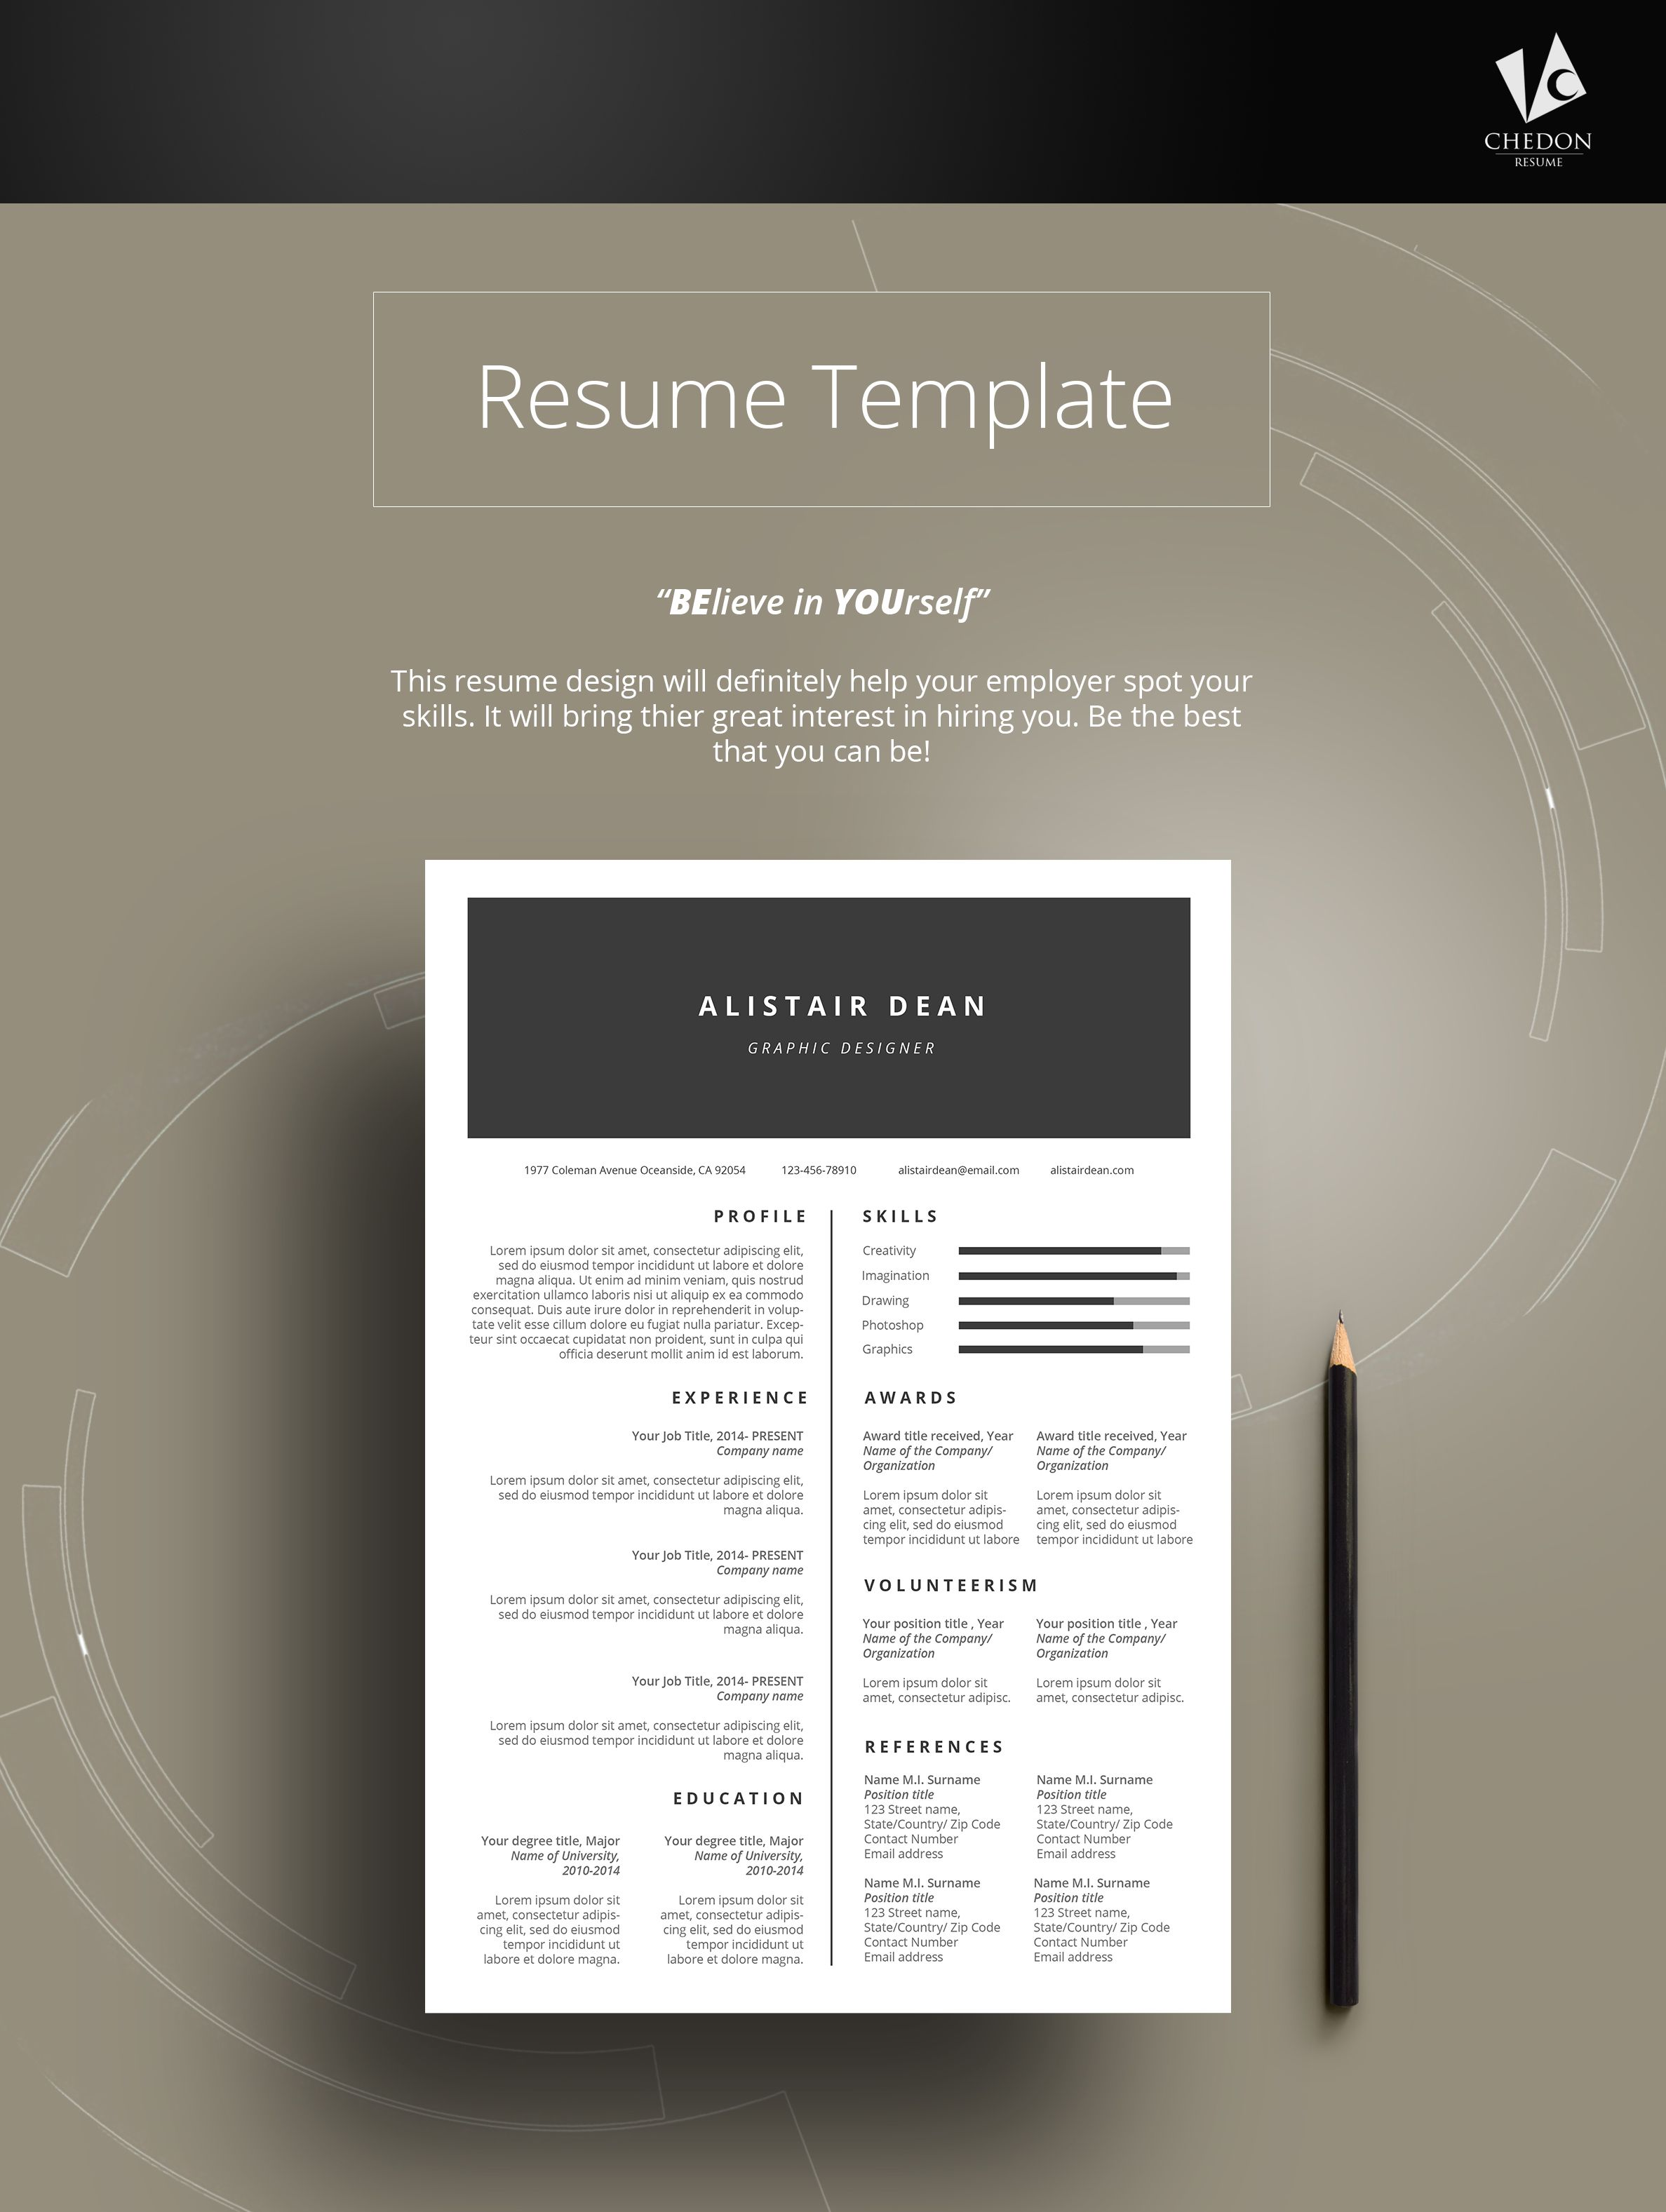 Resume Check Endearing Duosa Resume Check This Amazing Resume Template With Free Cover .